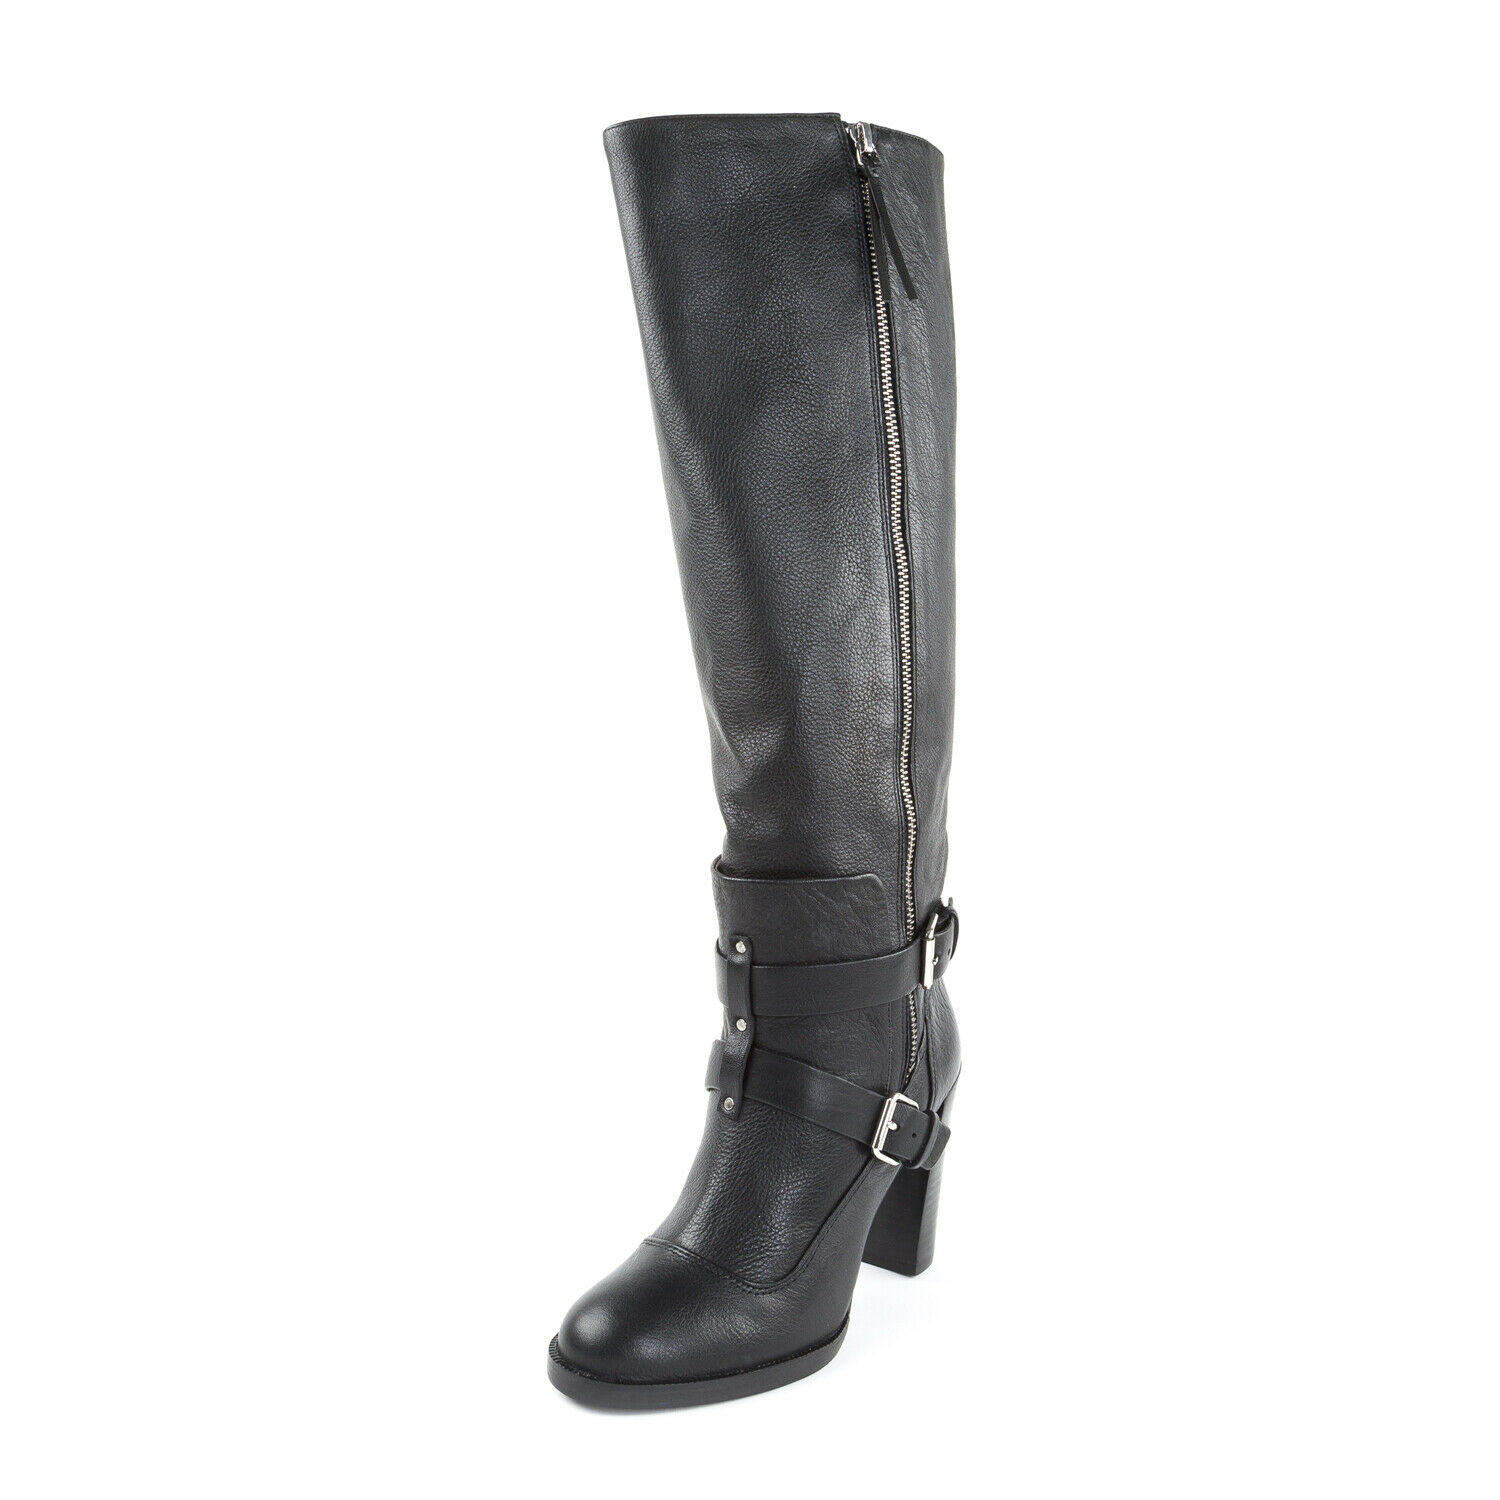 REBECCA MINKOFF Women's Billie Leather Knee-High Boots  425 NIB